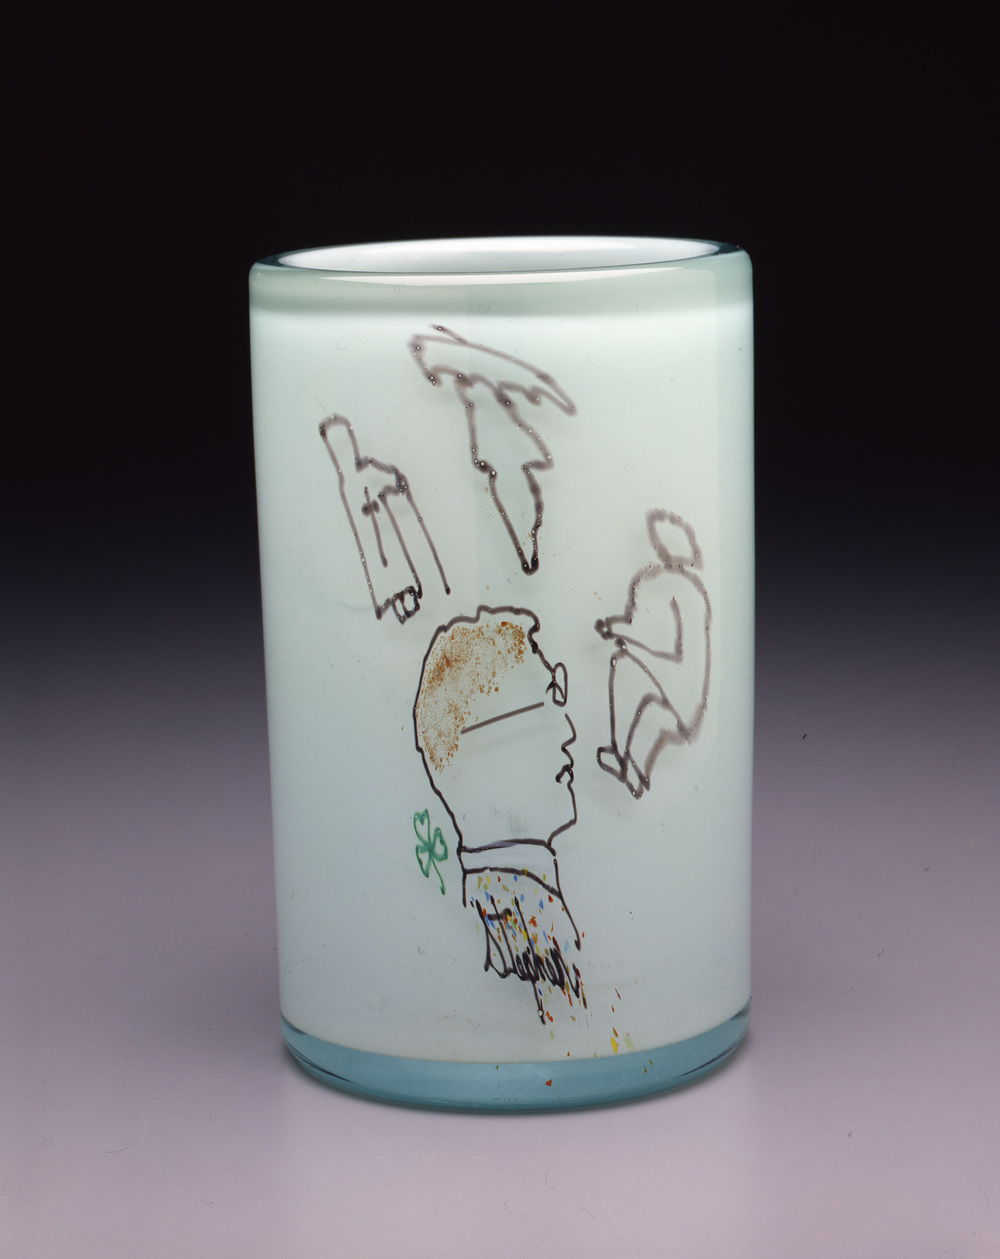 Dale Chihuly,  Irish Cylinder #13   (1975, glass, 9 1/2 x 5 1/2 inches), DC.275